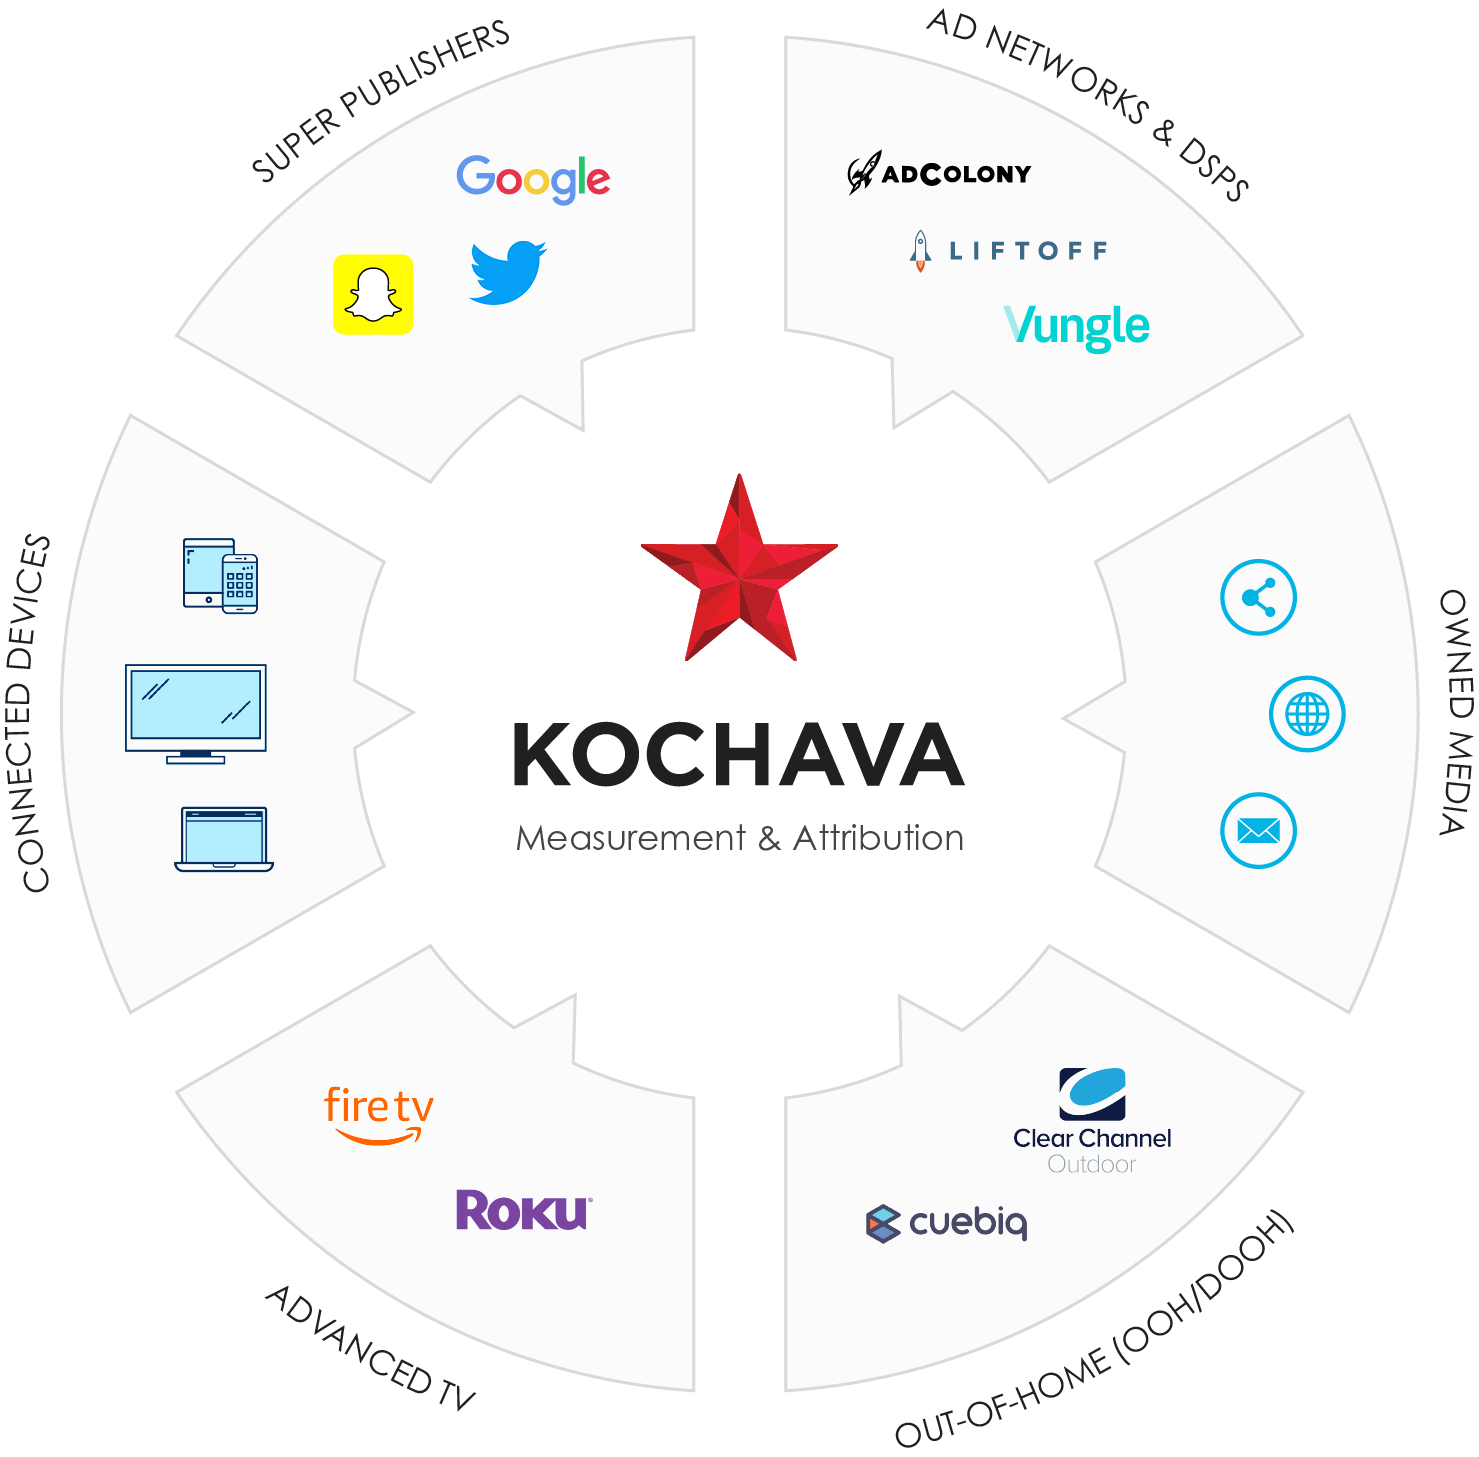 Kochava mobile measurement provider